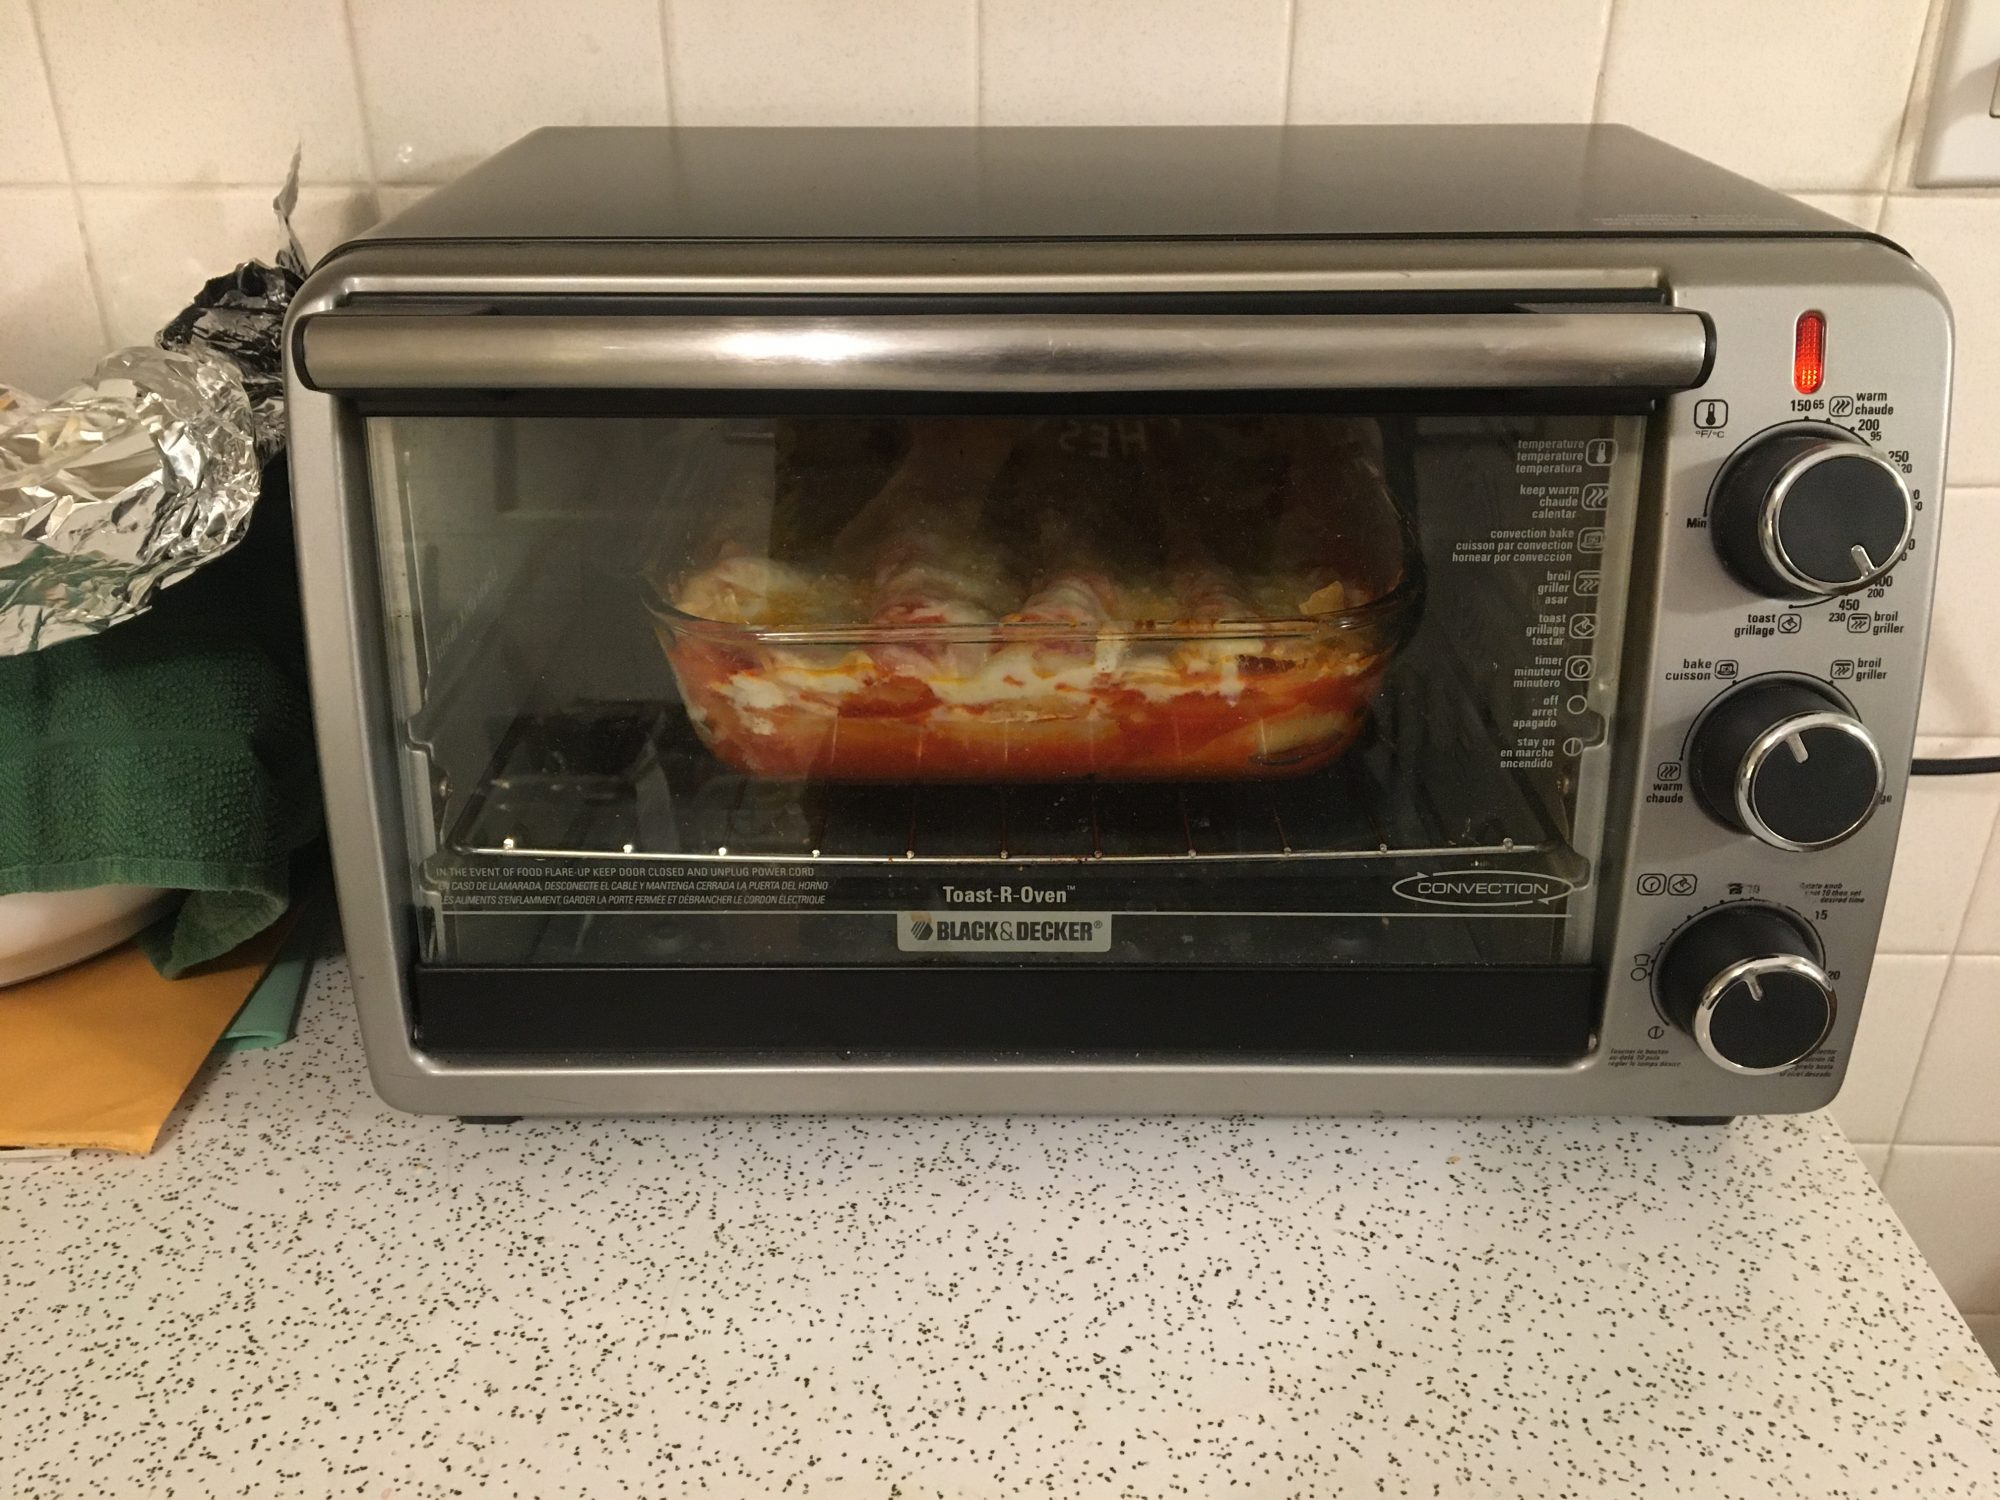 Toaster Oven Lasagna Cooking